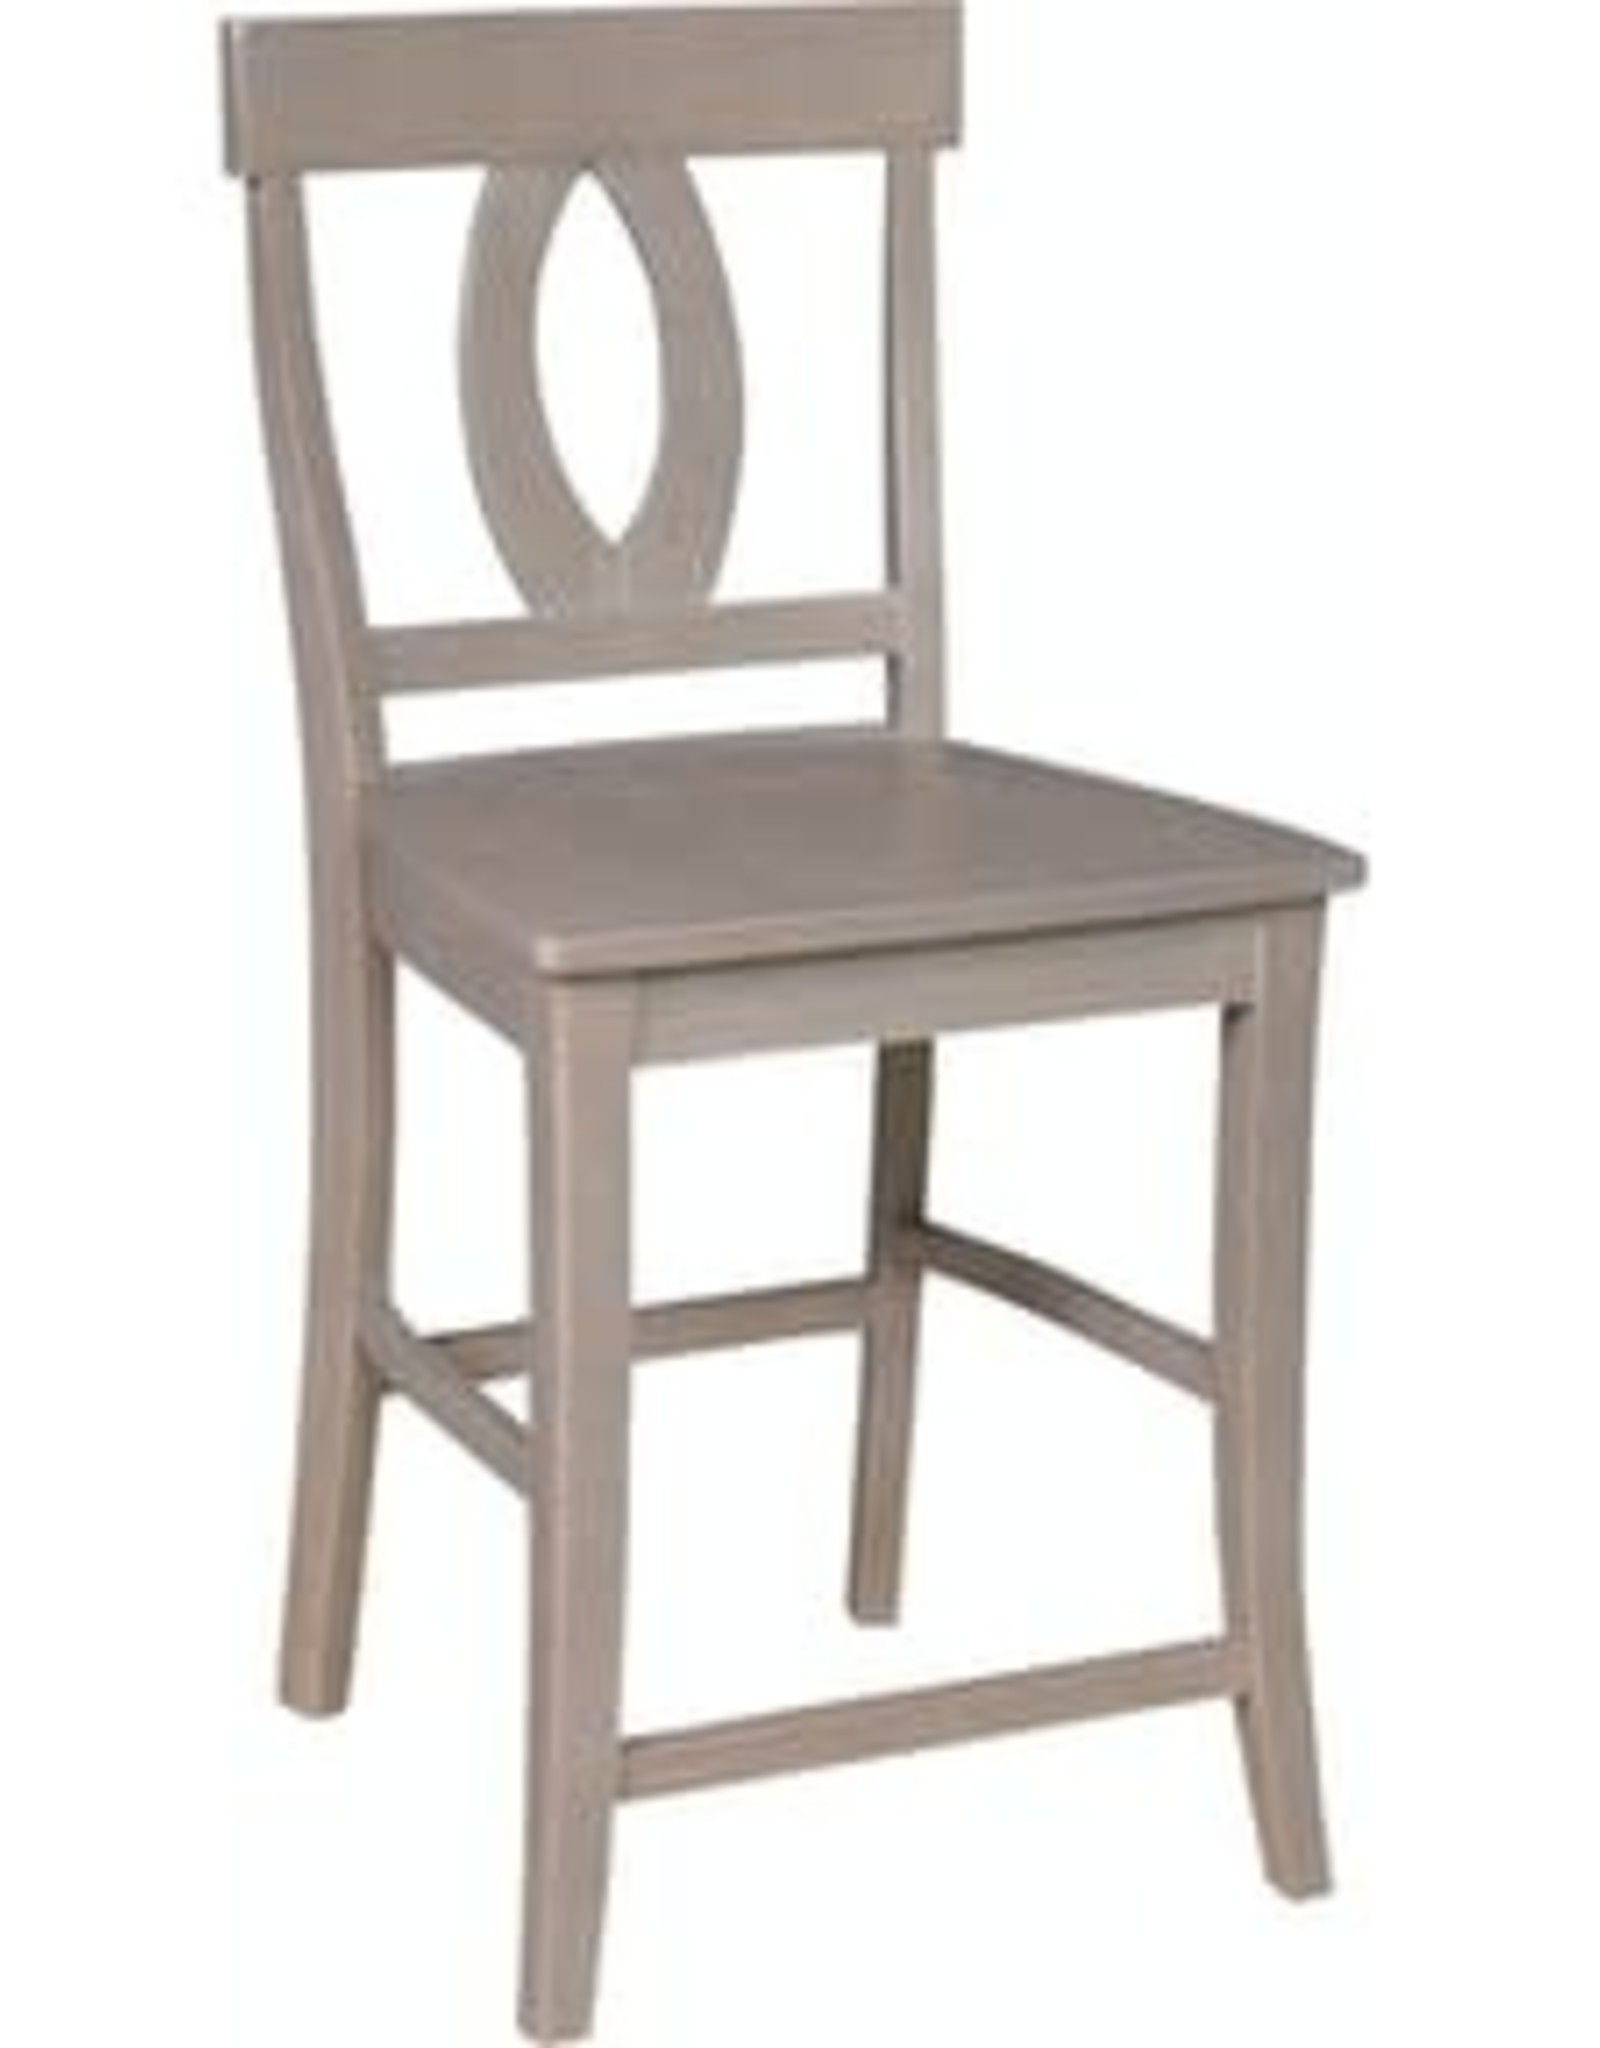 Whitewood Cosmopolitan Verona Counter-Height Stool w/ Back  (Specify Color)